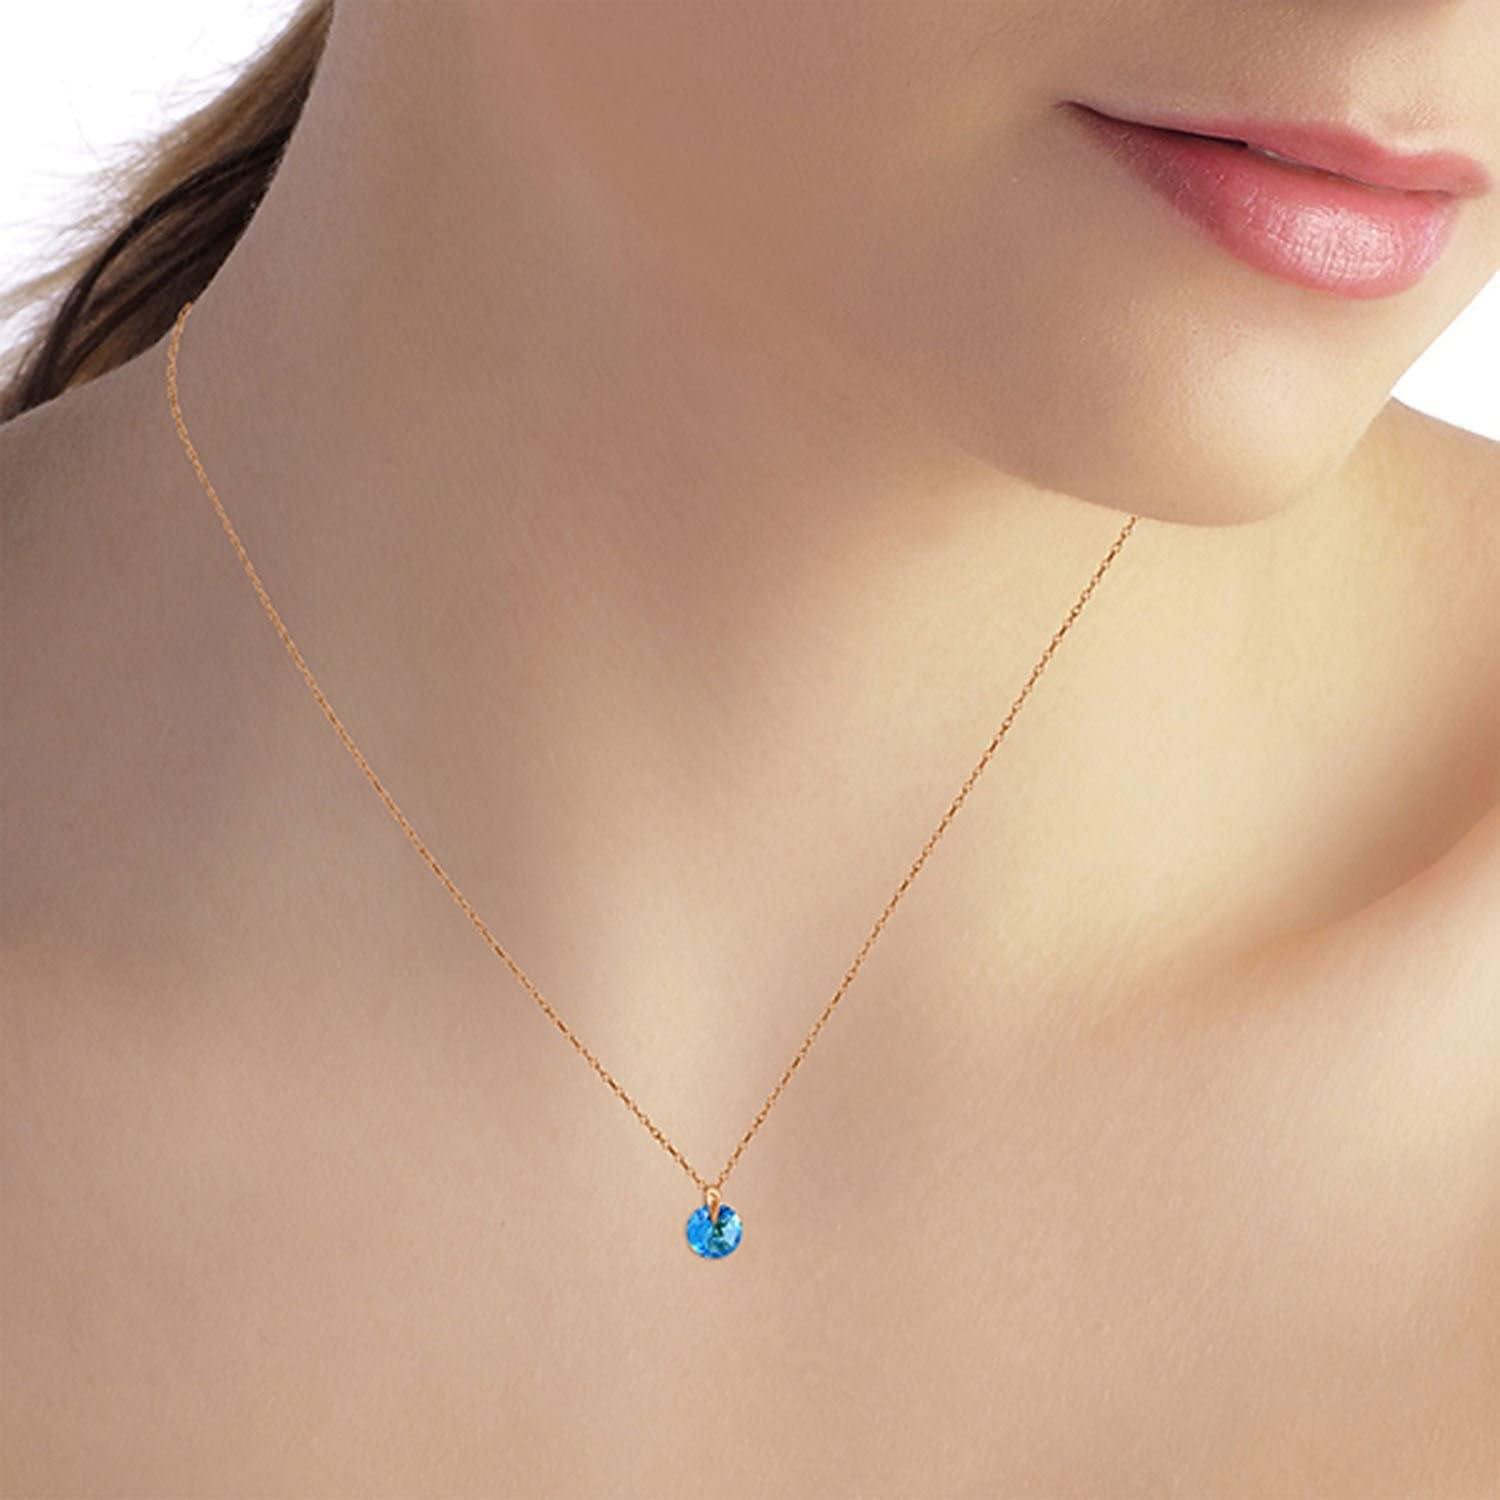 ALARRI 1 Carat 14K Solid Rose Gold Sundisk Blue Topaz Necklace with 24 Inch Chain Length